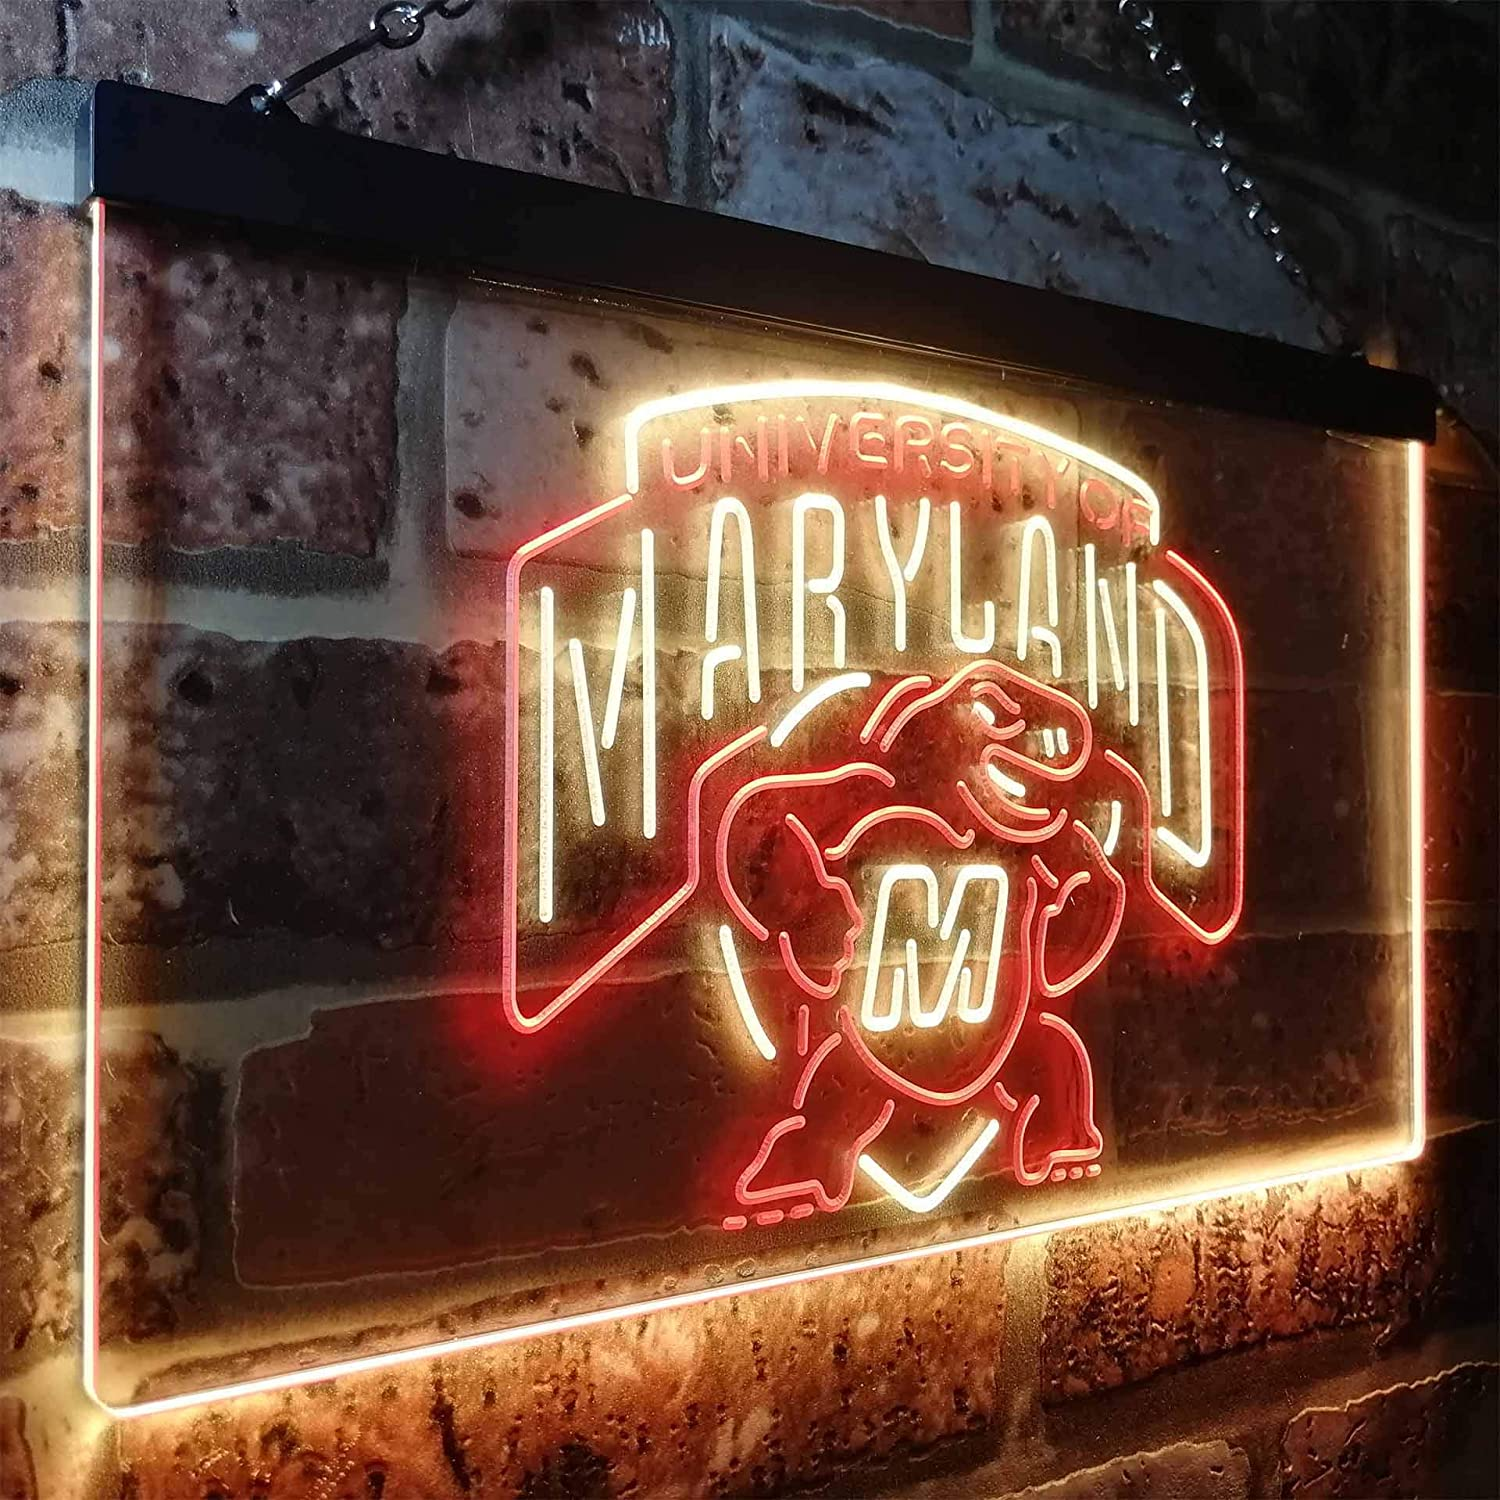 University of Maryland Terrapins Colorful LED Neon Sign Red and Yellow w12 x h8